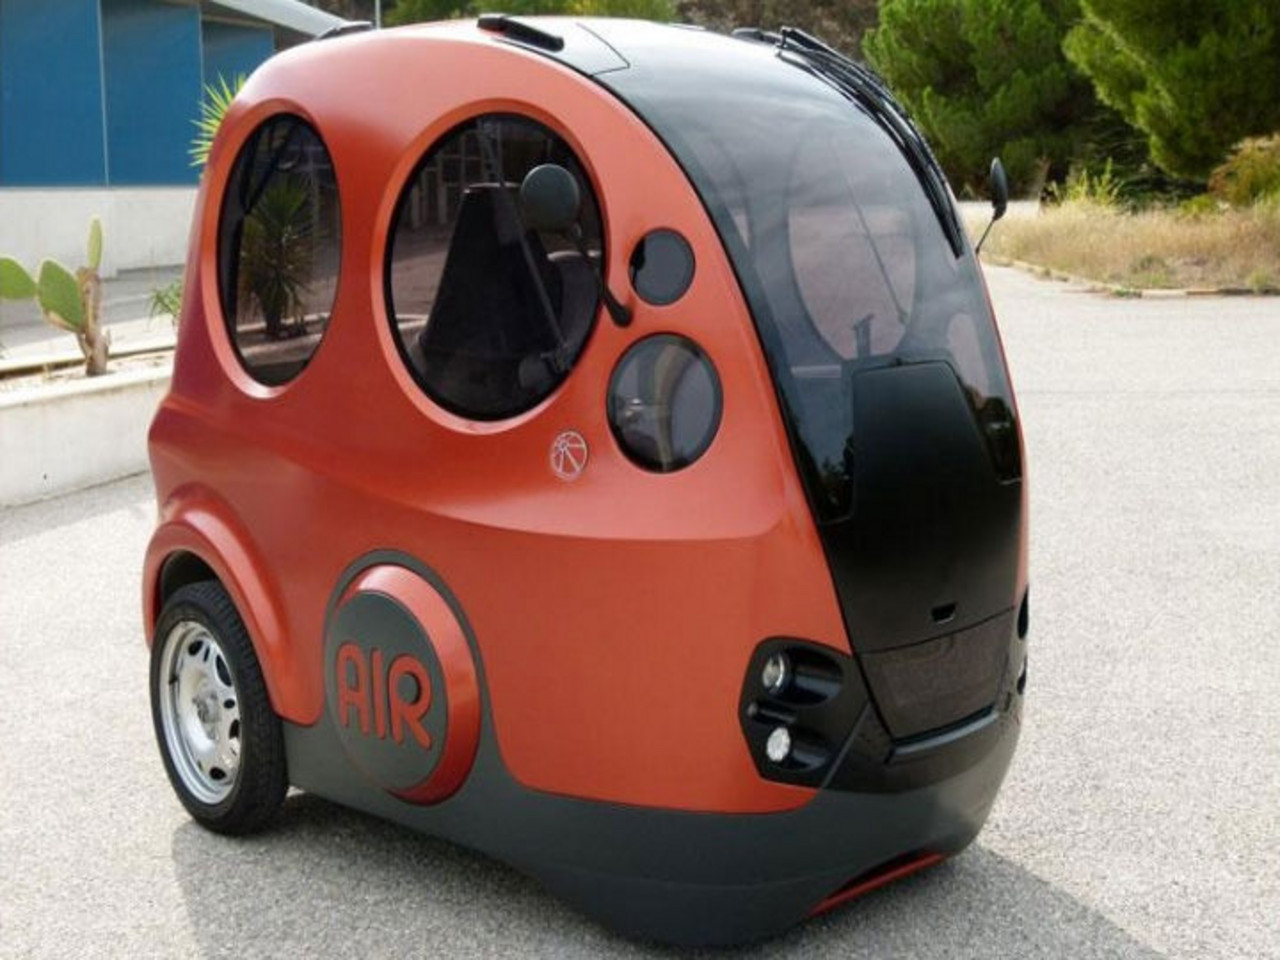 Tata concept car airpod runs on air